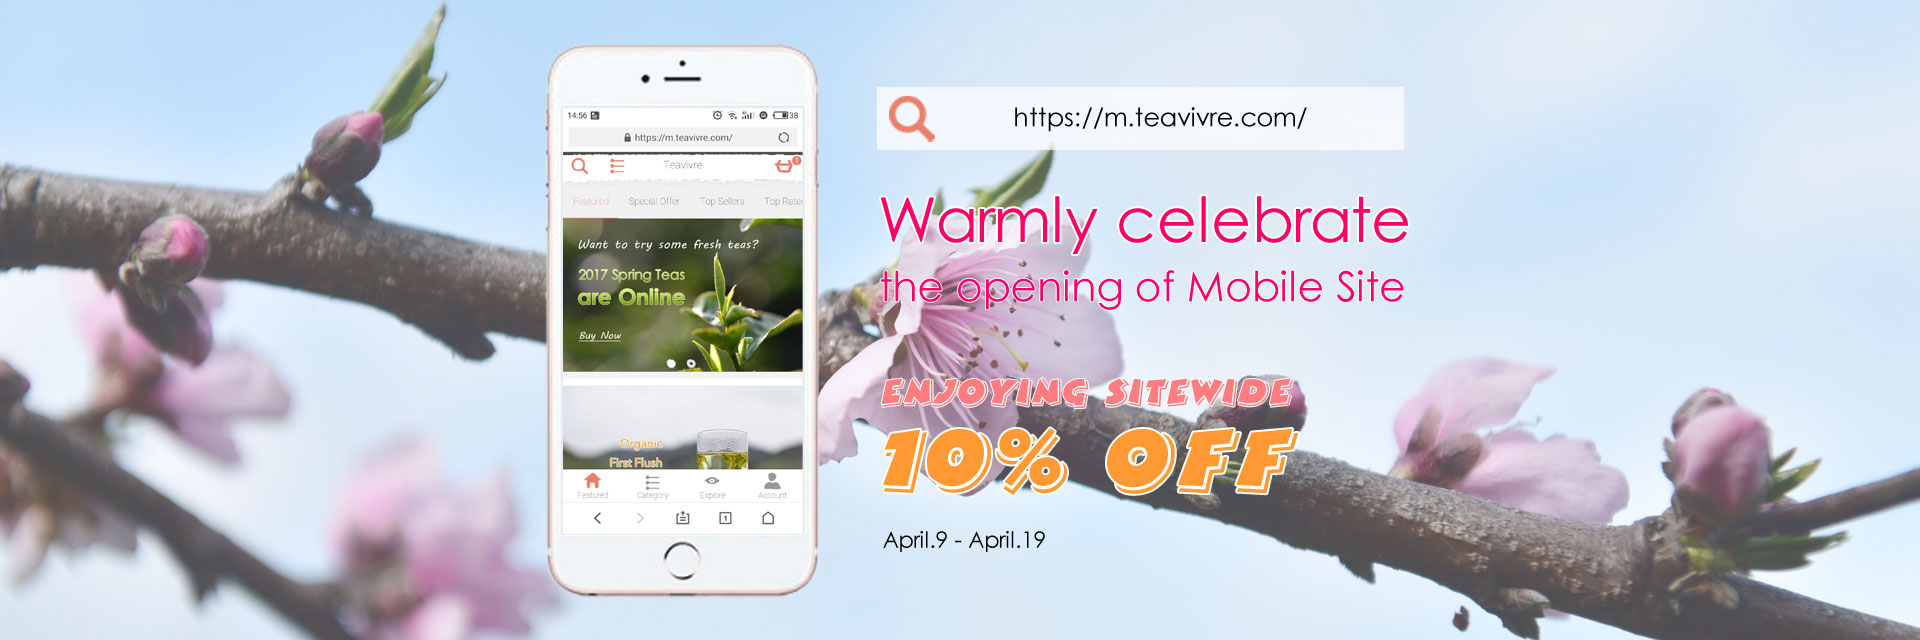 Enjoying 10% Discount at Teavivre Mobile Site